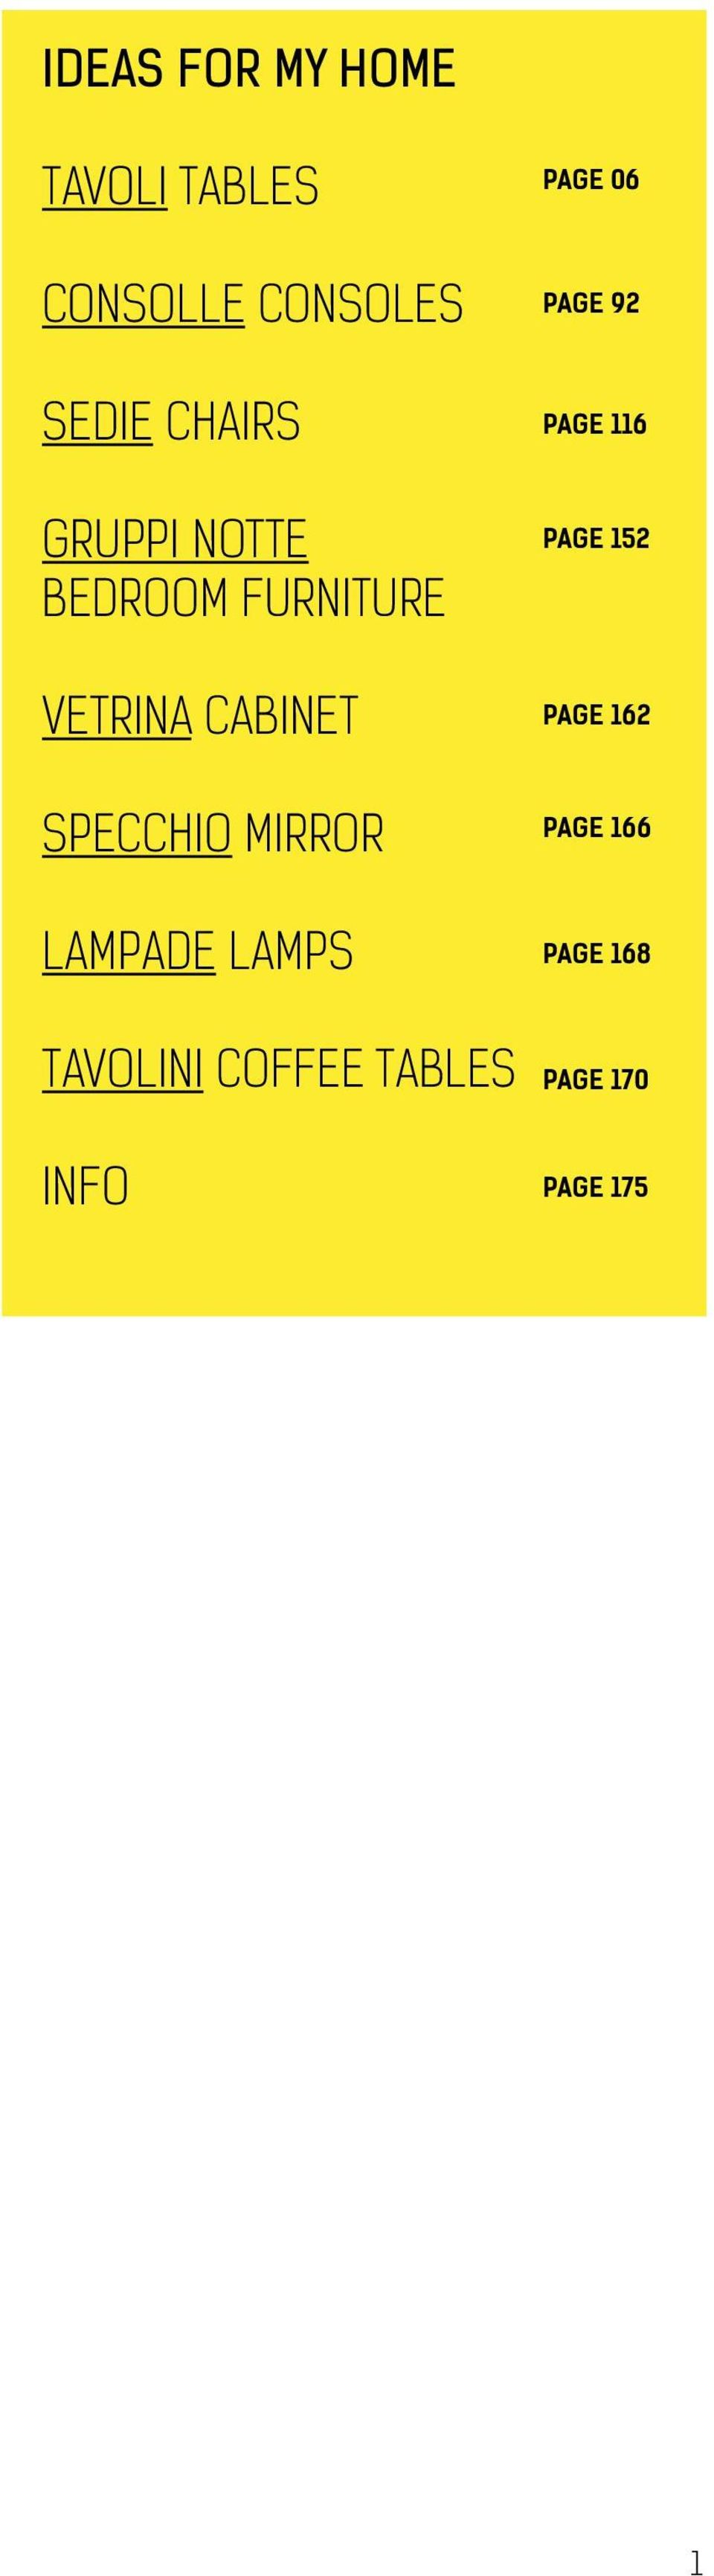 SPECCHIO MIRROR LAMPADE LAMPS TAVOLINI COFFEE TABLES INFO